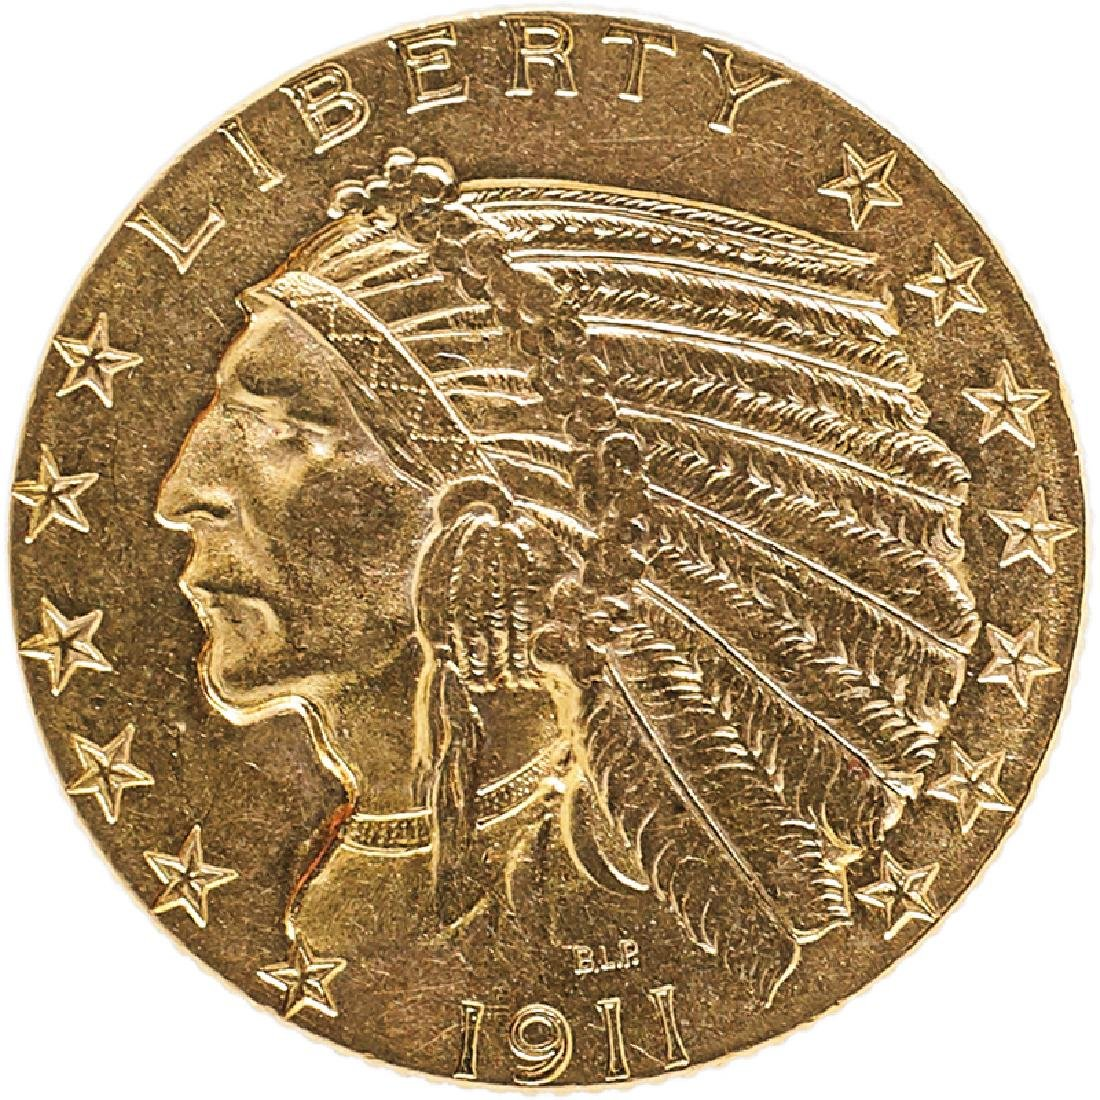 U.S. 1911 INDIAN $5 GOLD COIN